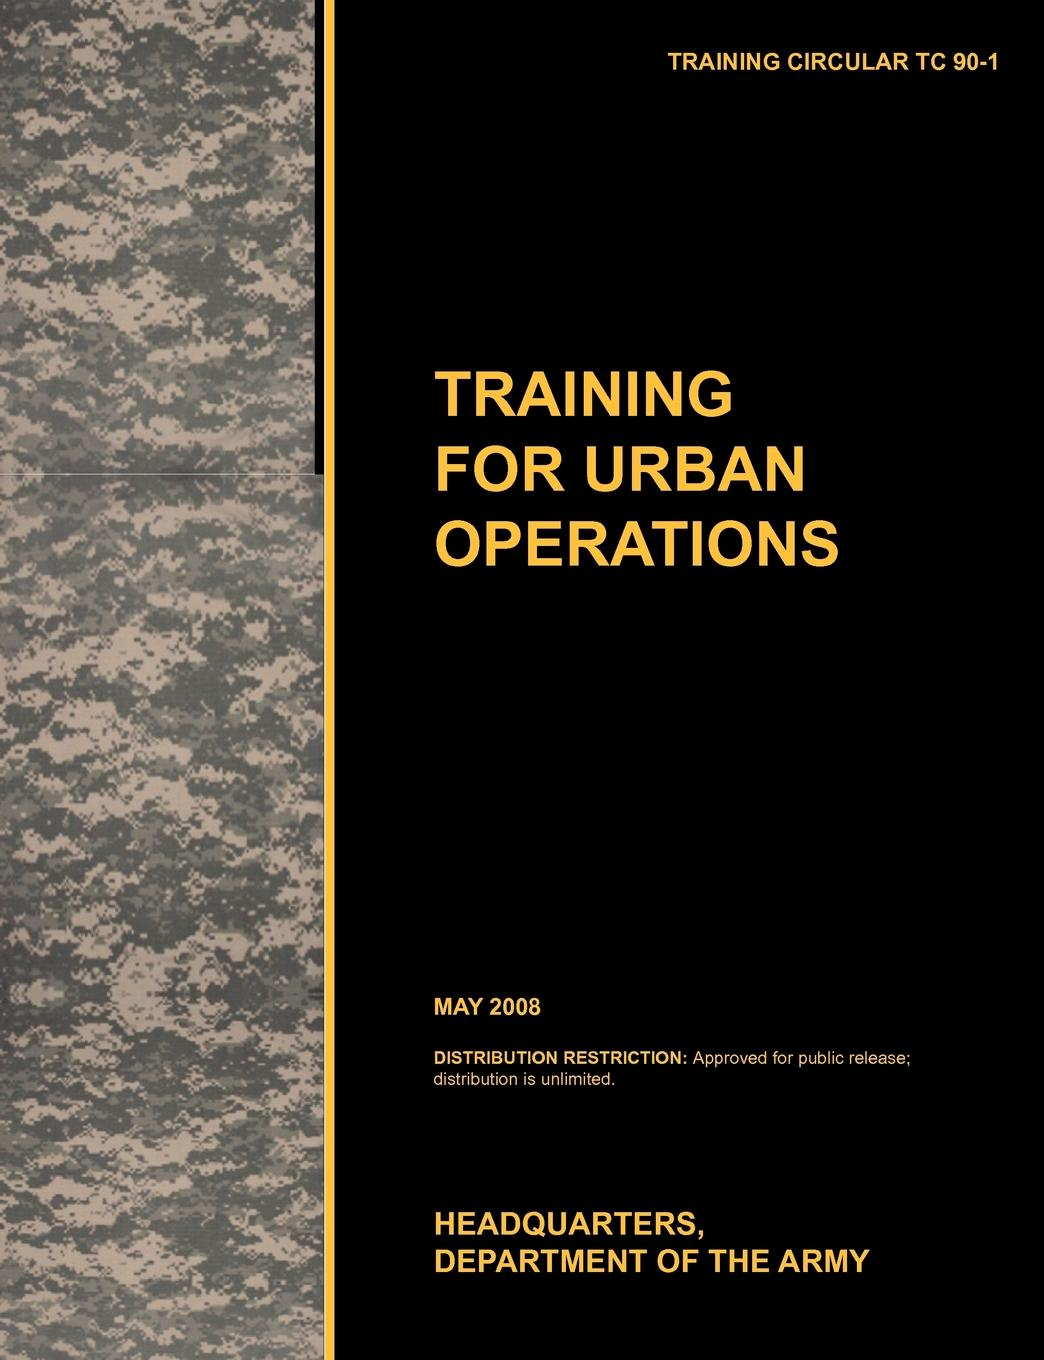 U.S. Army Training and Doctrine Command Training for Urban Operations. The official U.S. Army Training Manual TC 90-1 (May 2008) standard or nonstandard and timing belt type haul off pulley